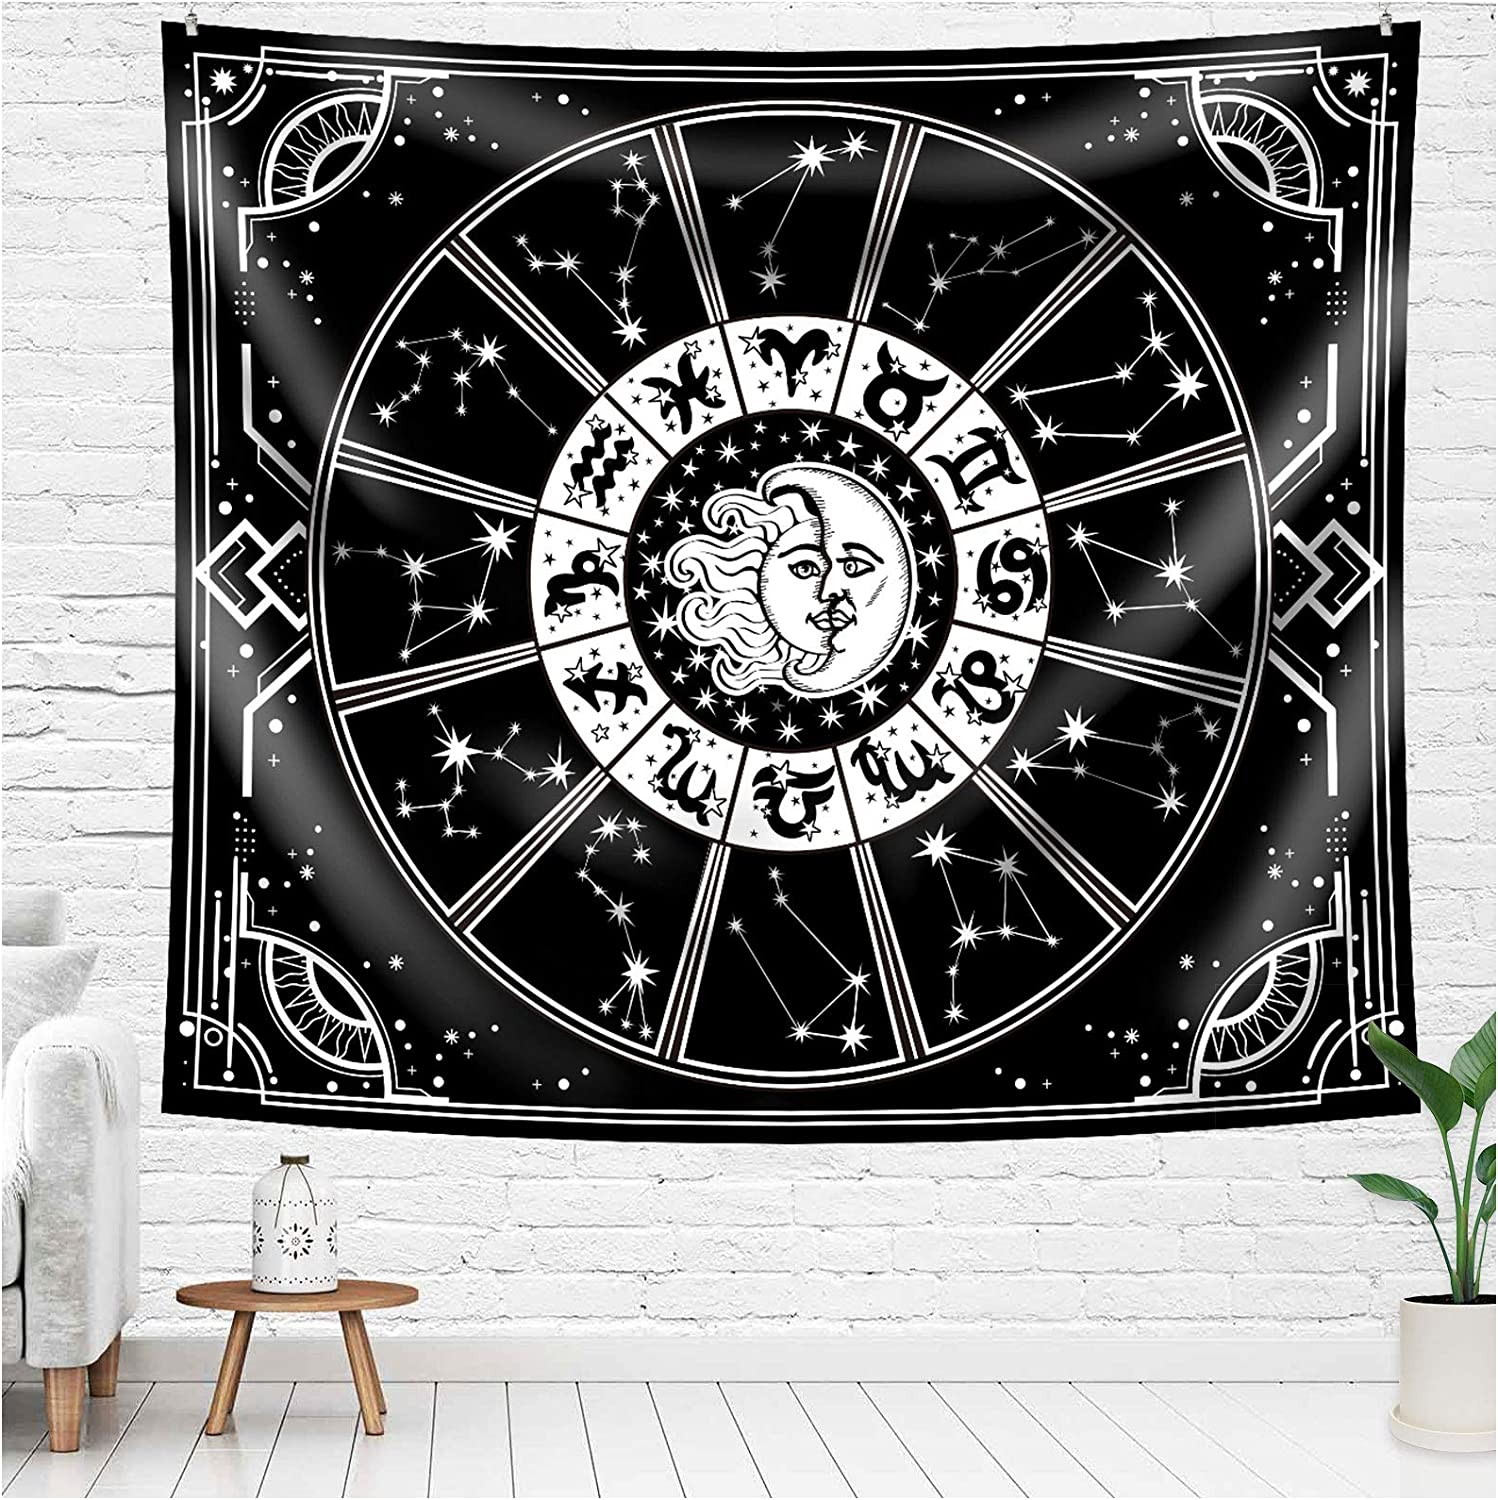 Constellation Tapestry Horoscope Tarot Tapestry Zodiac Wall Hanging Blanket Room Decor Celestial Sun Moon Tapestry Wall Decor Psychedelic Mystery Astrology Tapestry Wall Decor For Bedroom 59 X 51 Inches